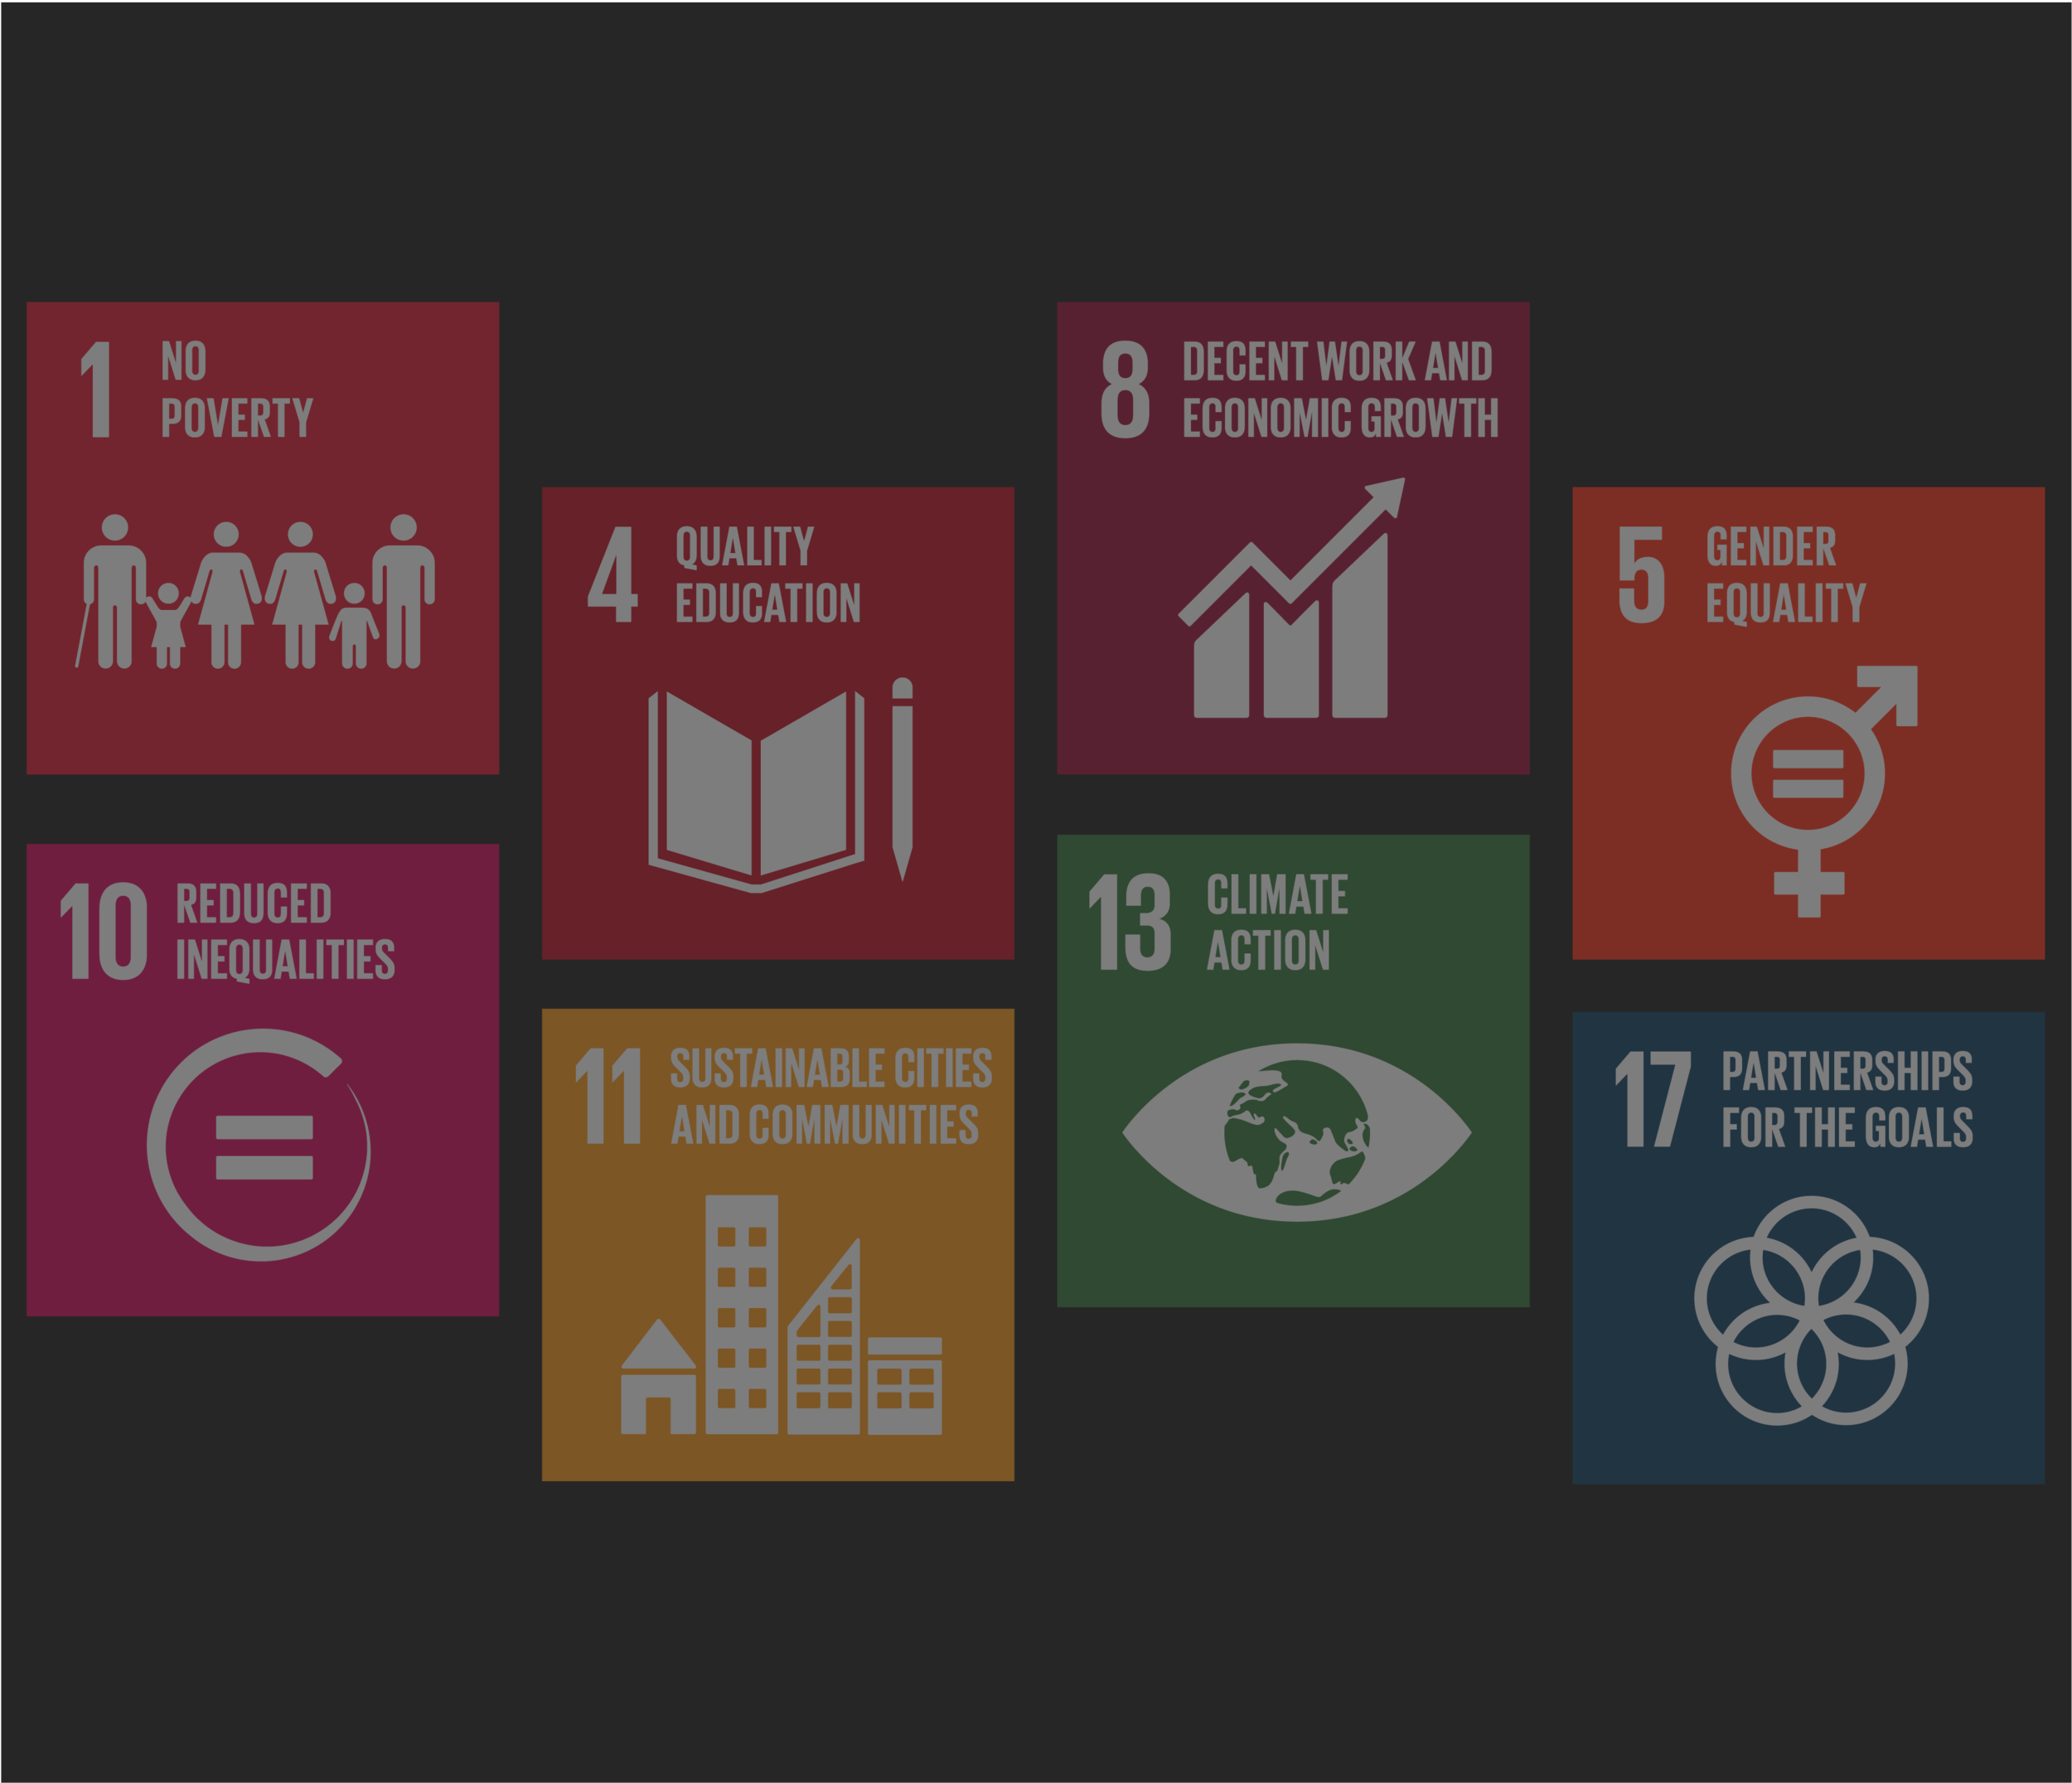 GBHF__Global Goals-Charcoal Background.png